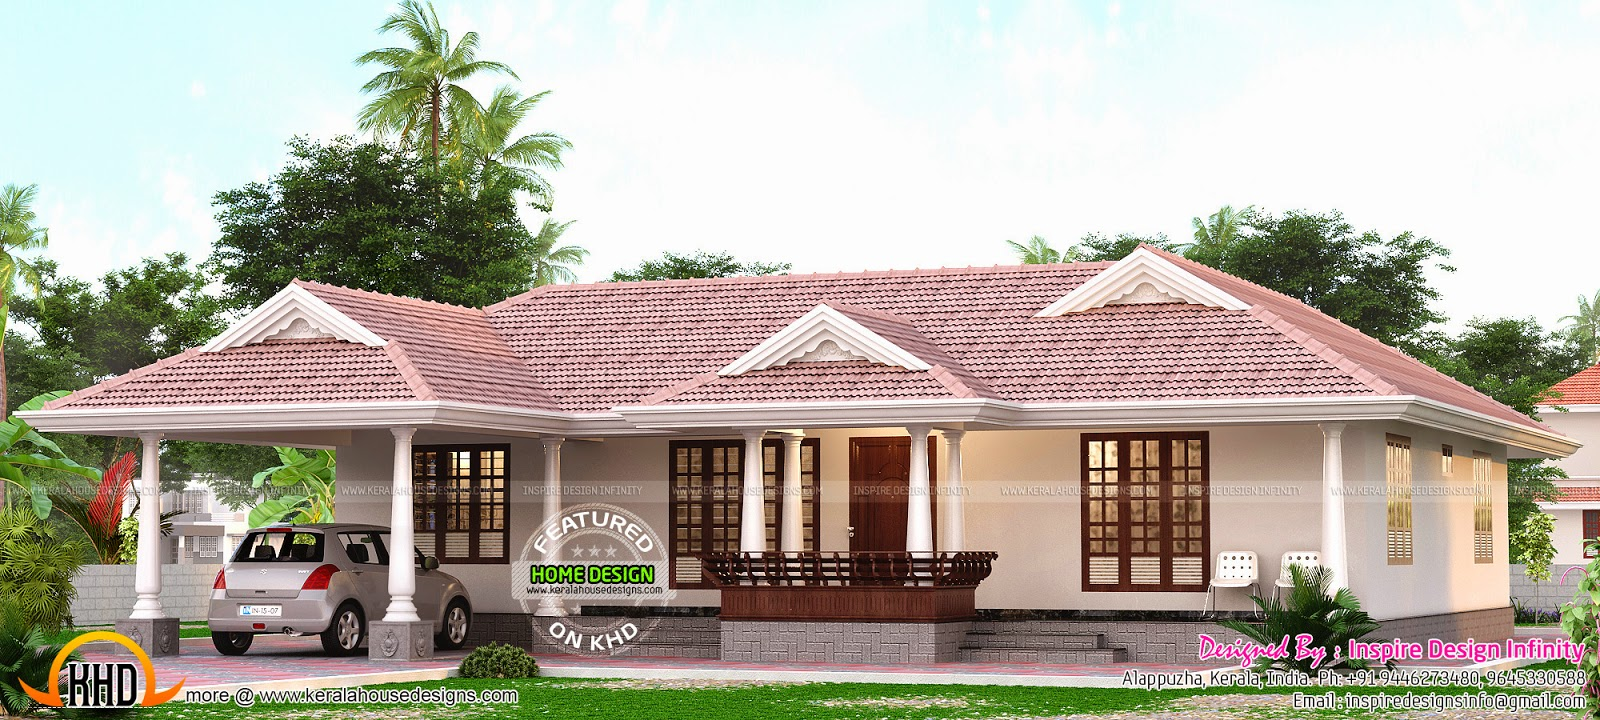 Kerala model single storied home kerala home design and for Single floor house plans kerala style